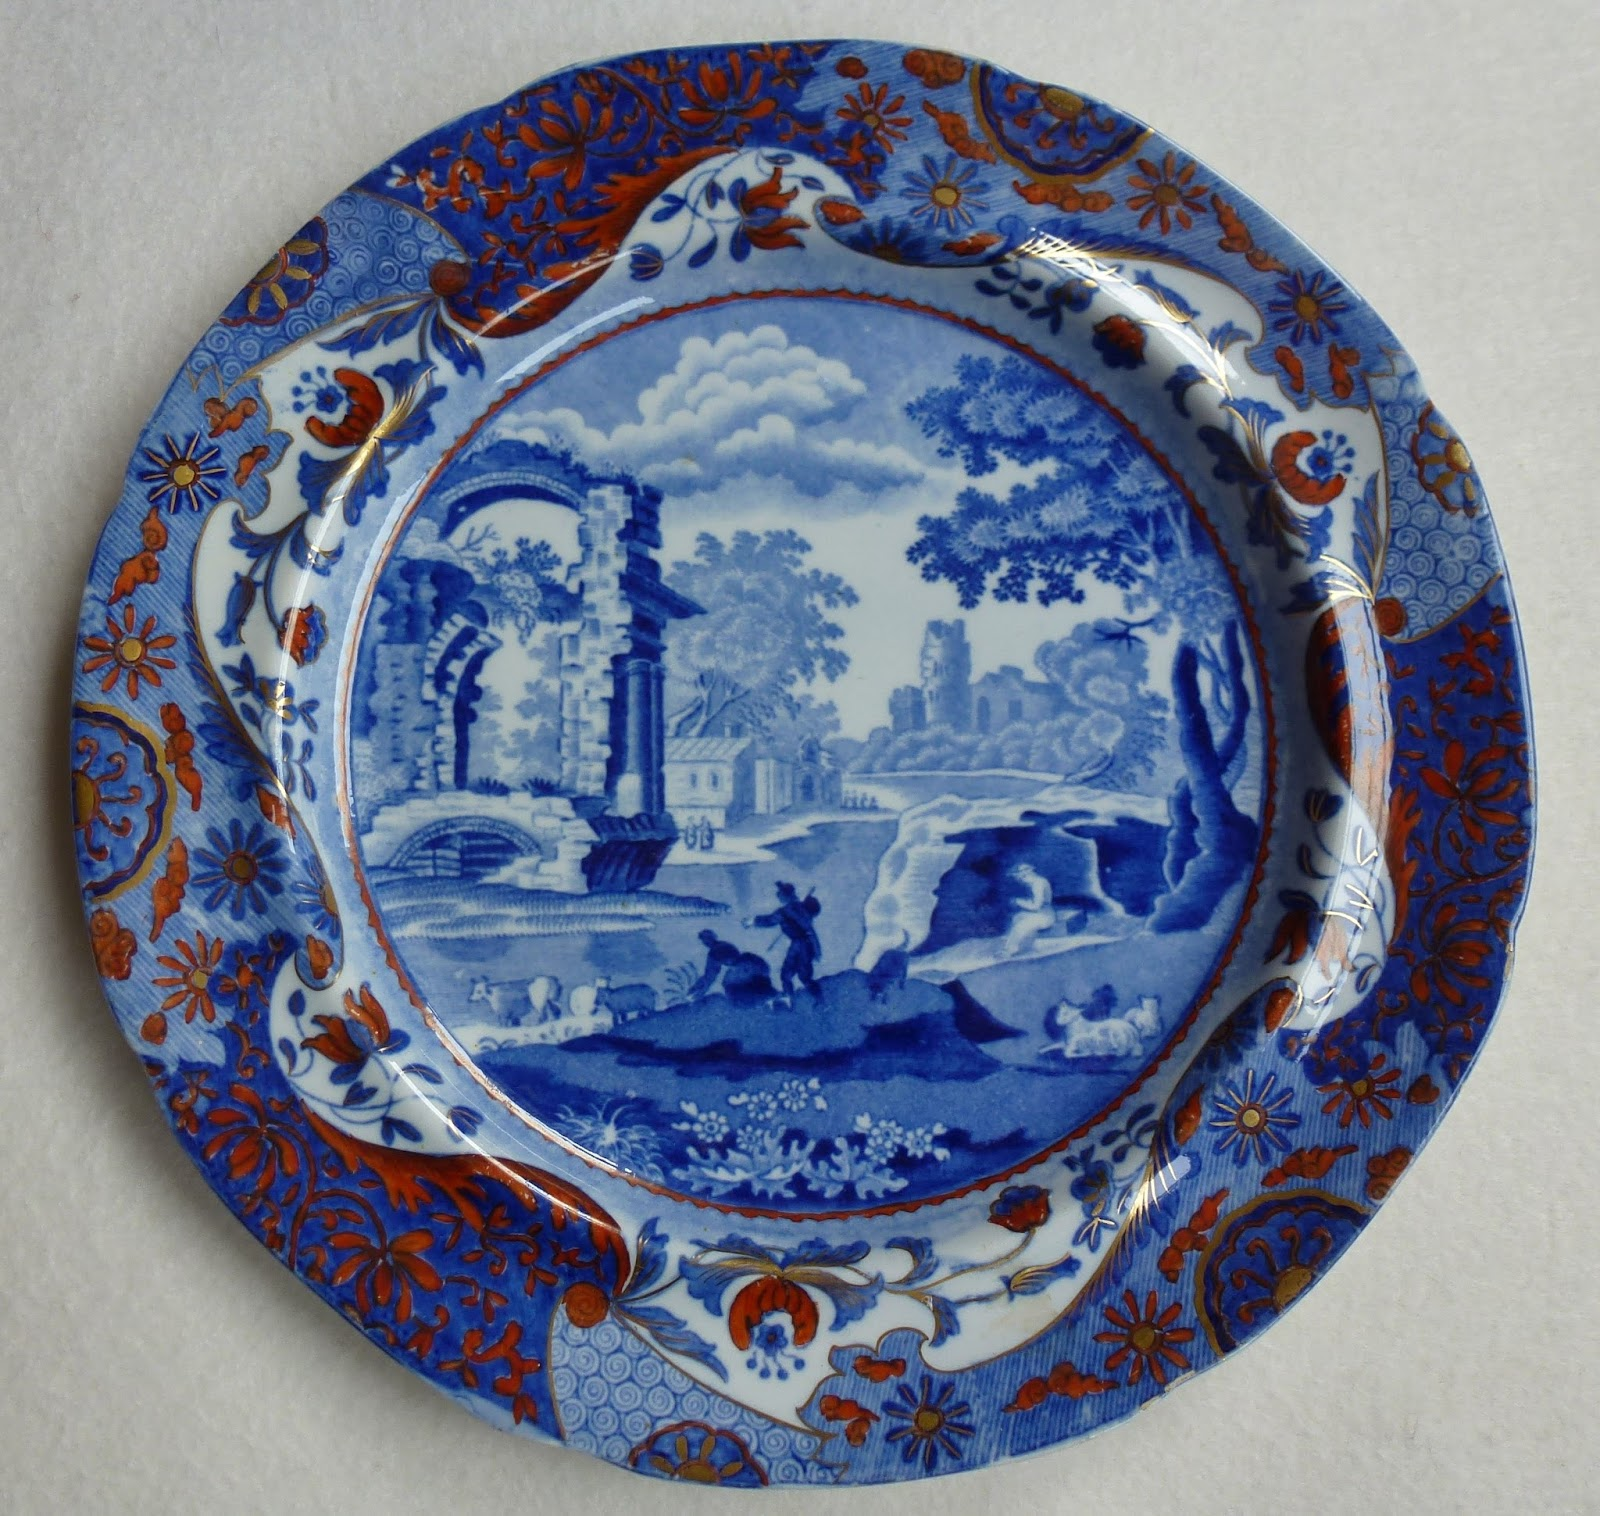 Spode China Patterns Cool Design Inspiration